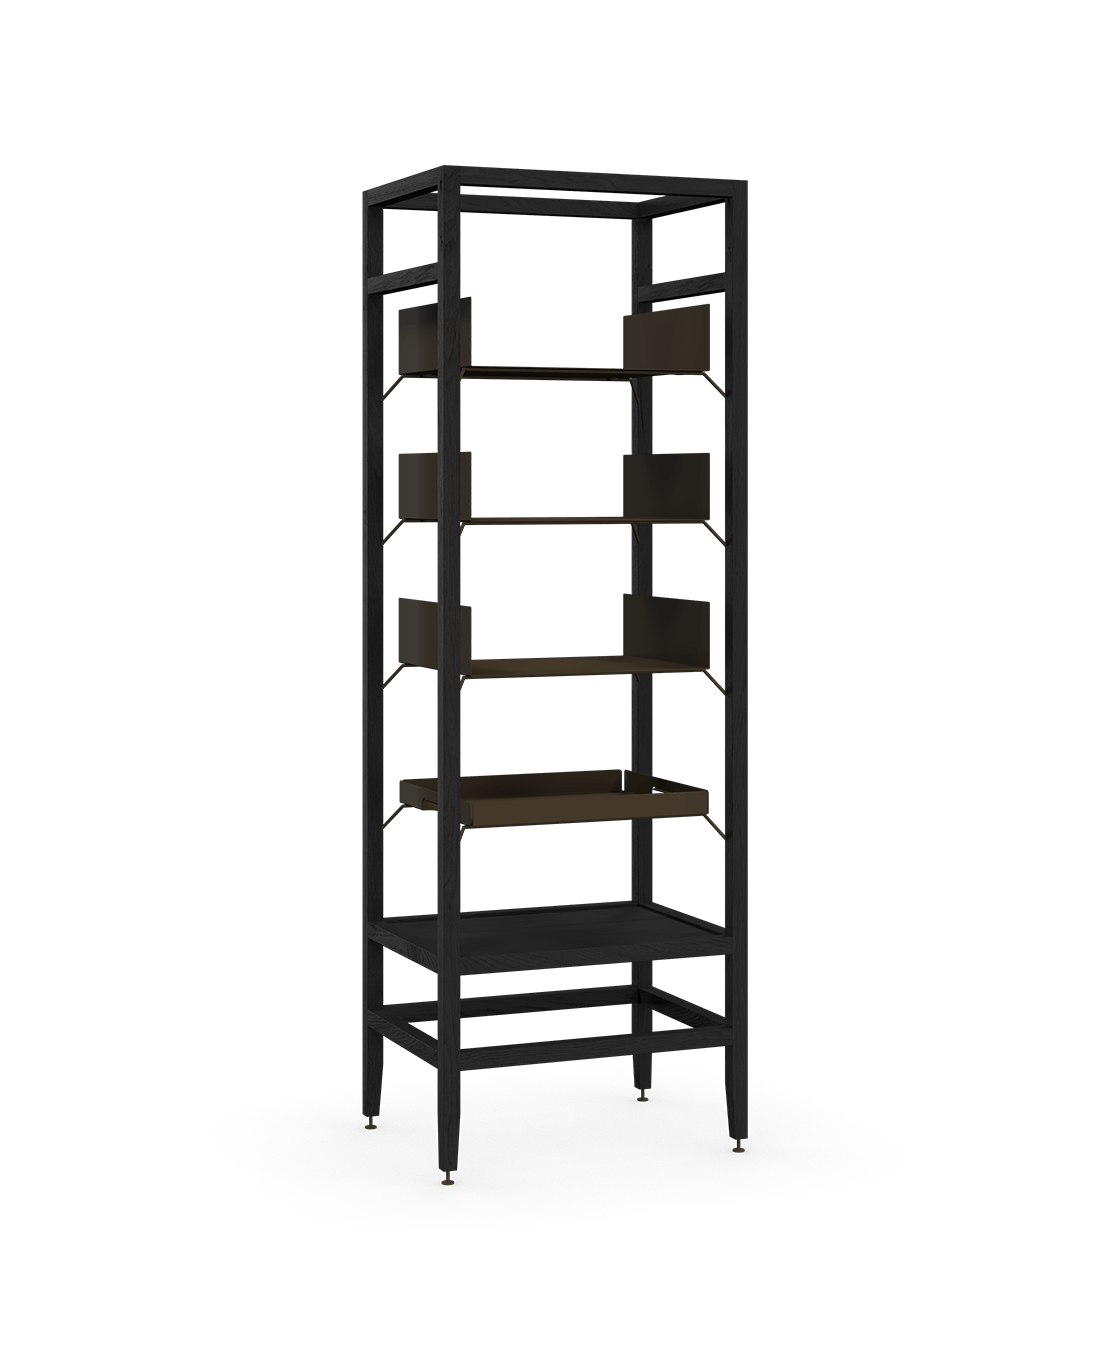 coquo volitare midnight black stained oak solid wood modular 3 shelves 1 removable tray storage tall bookcase shelving unit 24 inch C2-S-2418-0001-BK